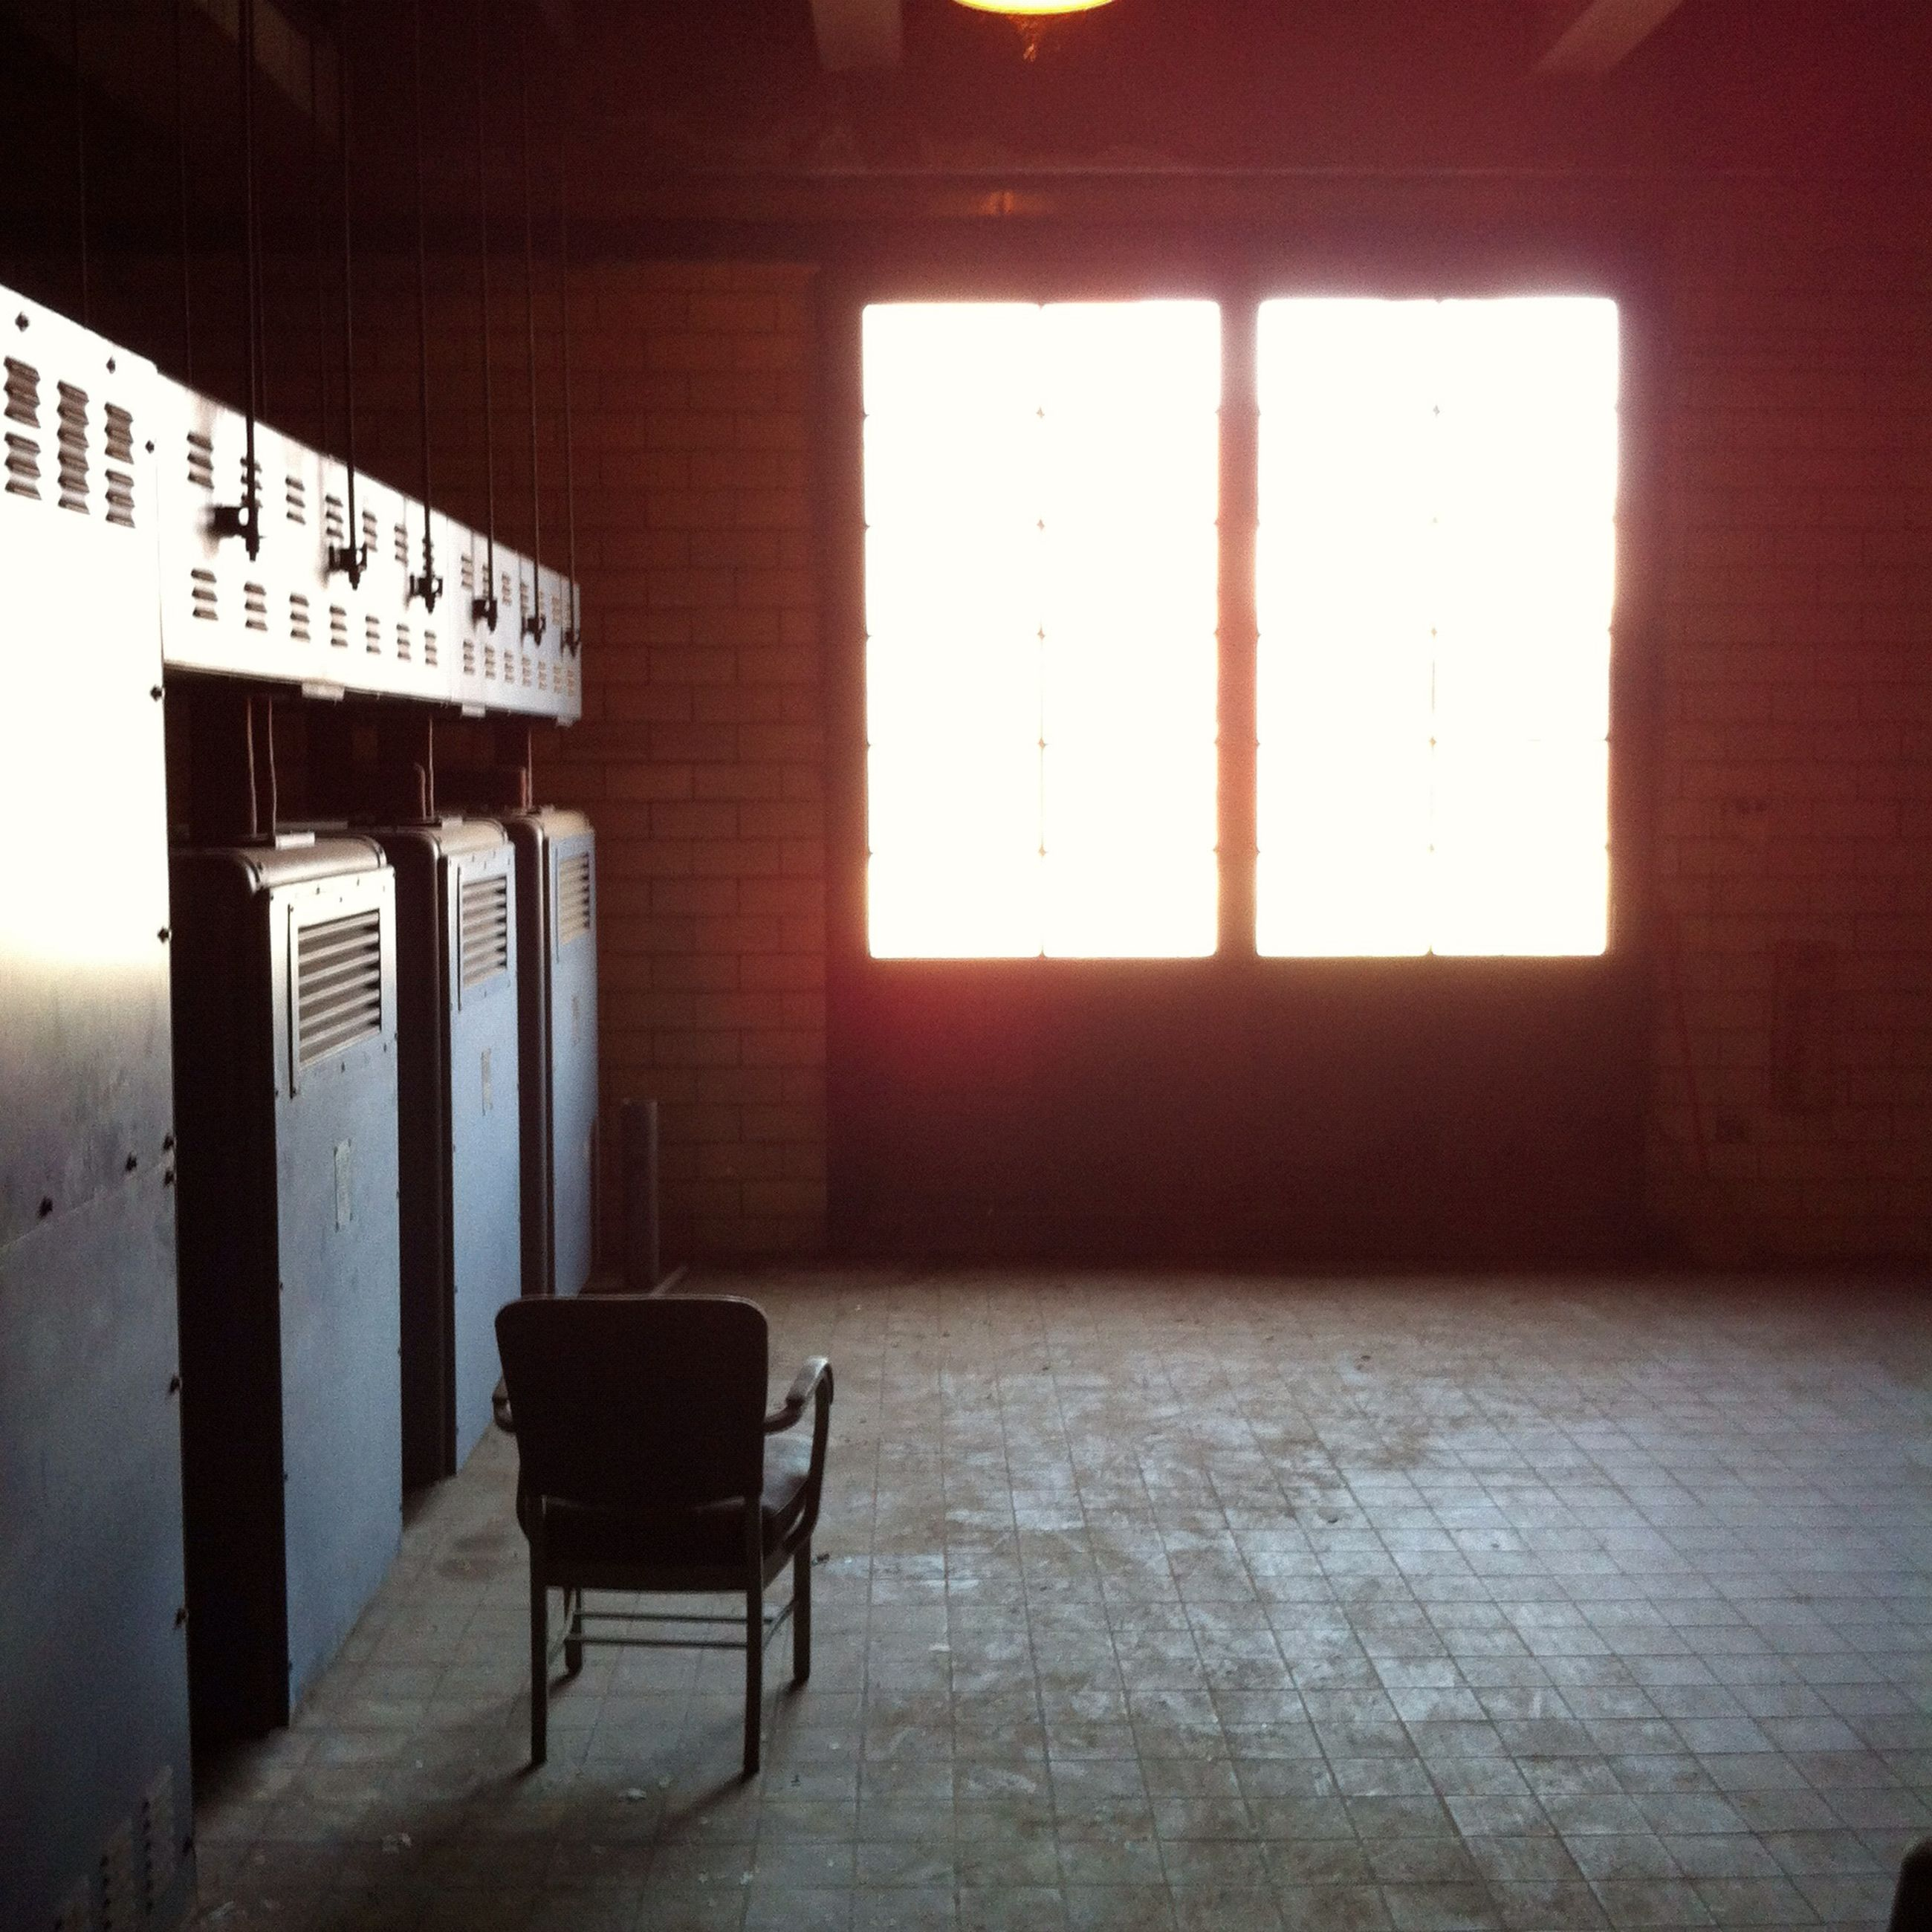 indoors, window, absence, empty, chair, architecture, built structure, table, wall - building feature, seat, no people, house, day, sunlight, home interior, door, wall, flooring, text, communication